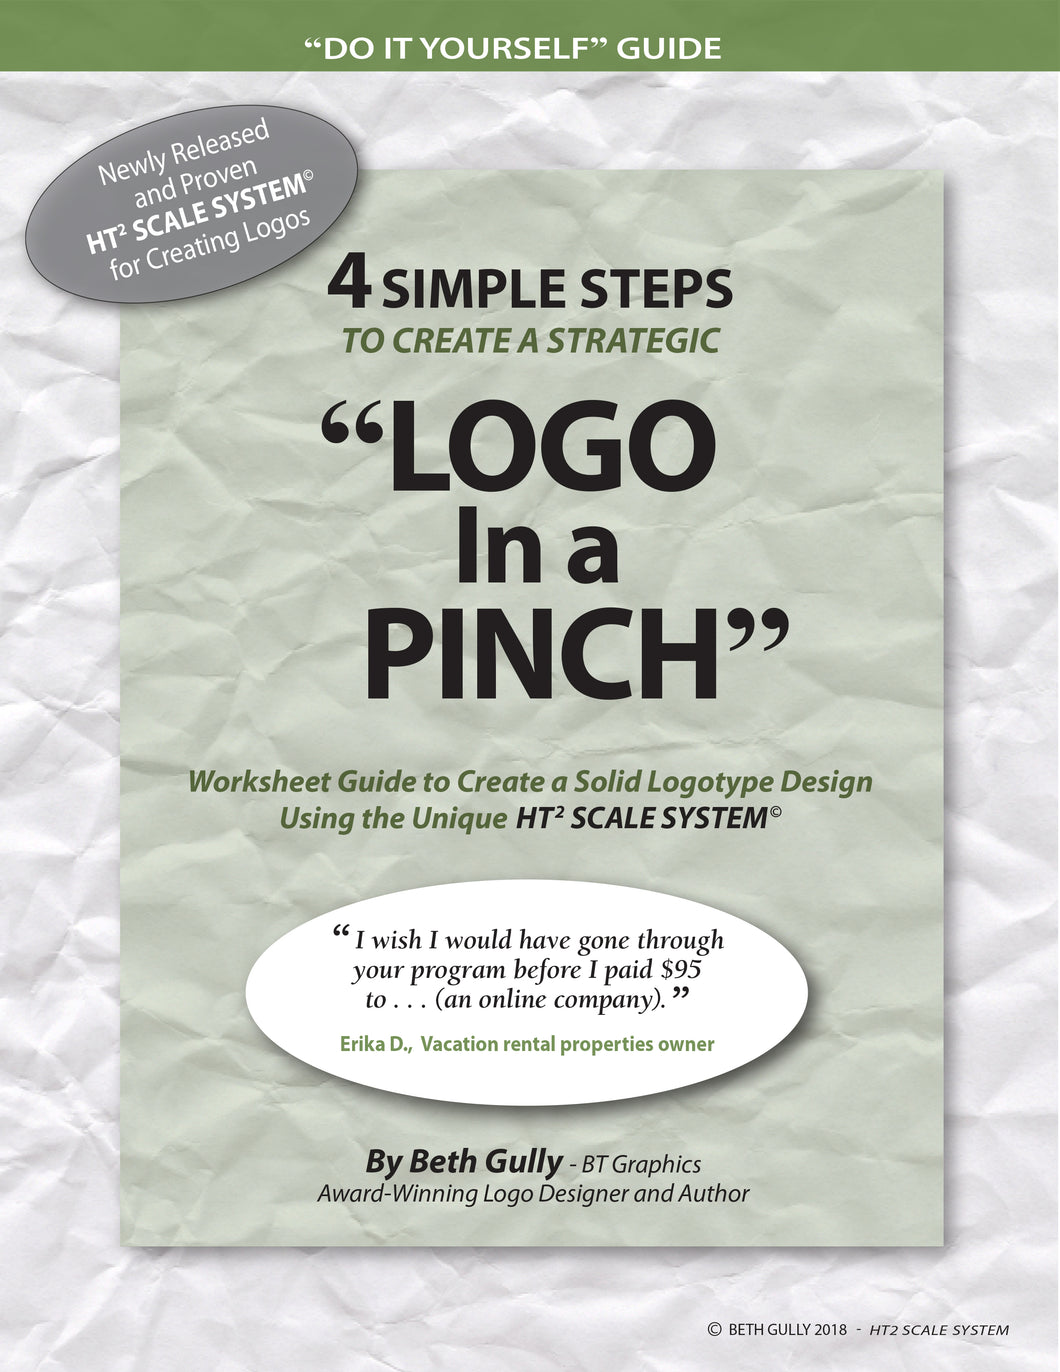 LOGO - 4 Simple Steps to Create a Strategic